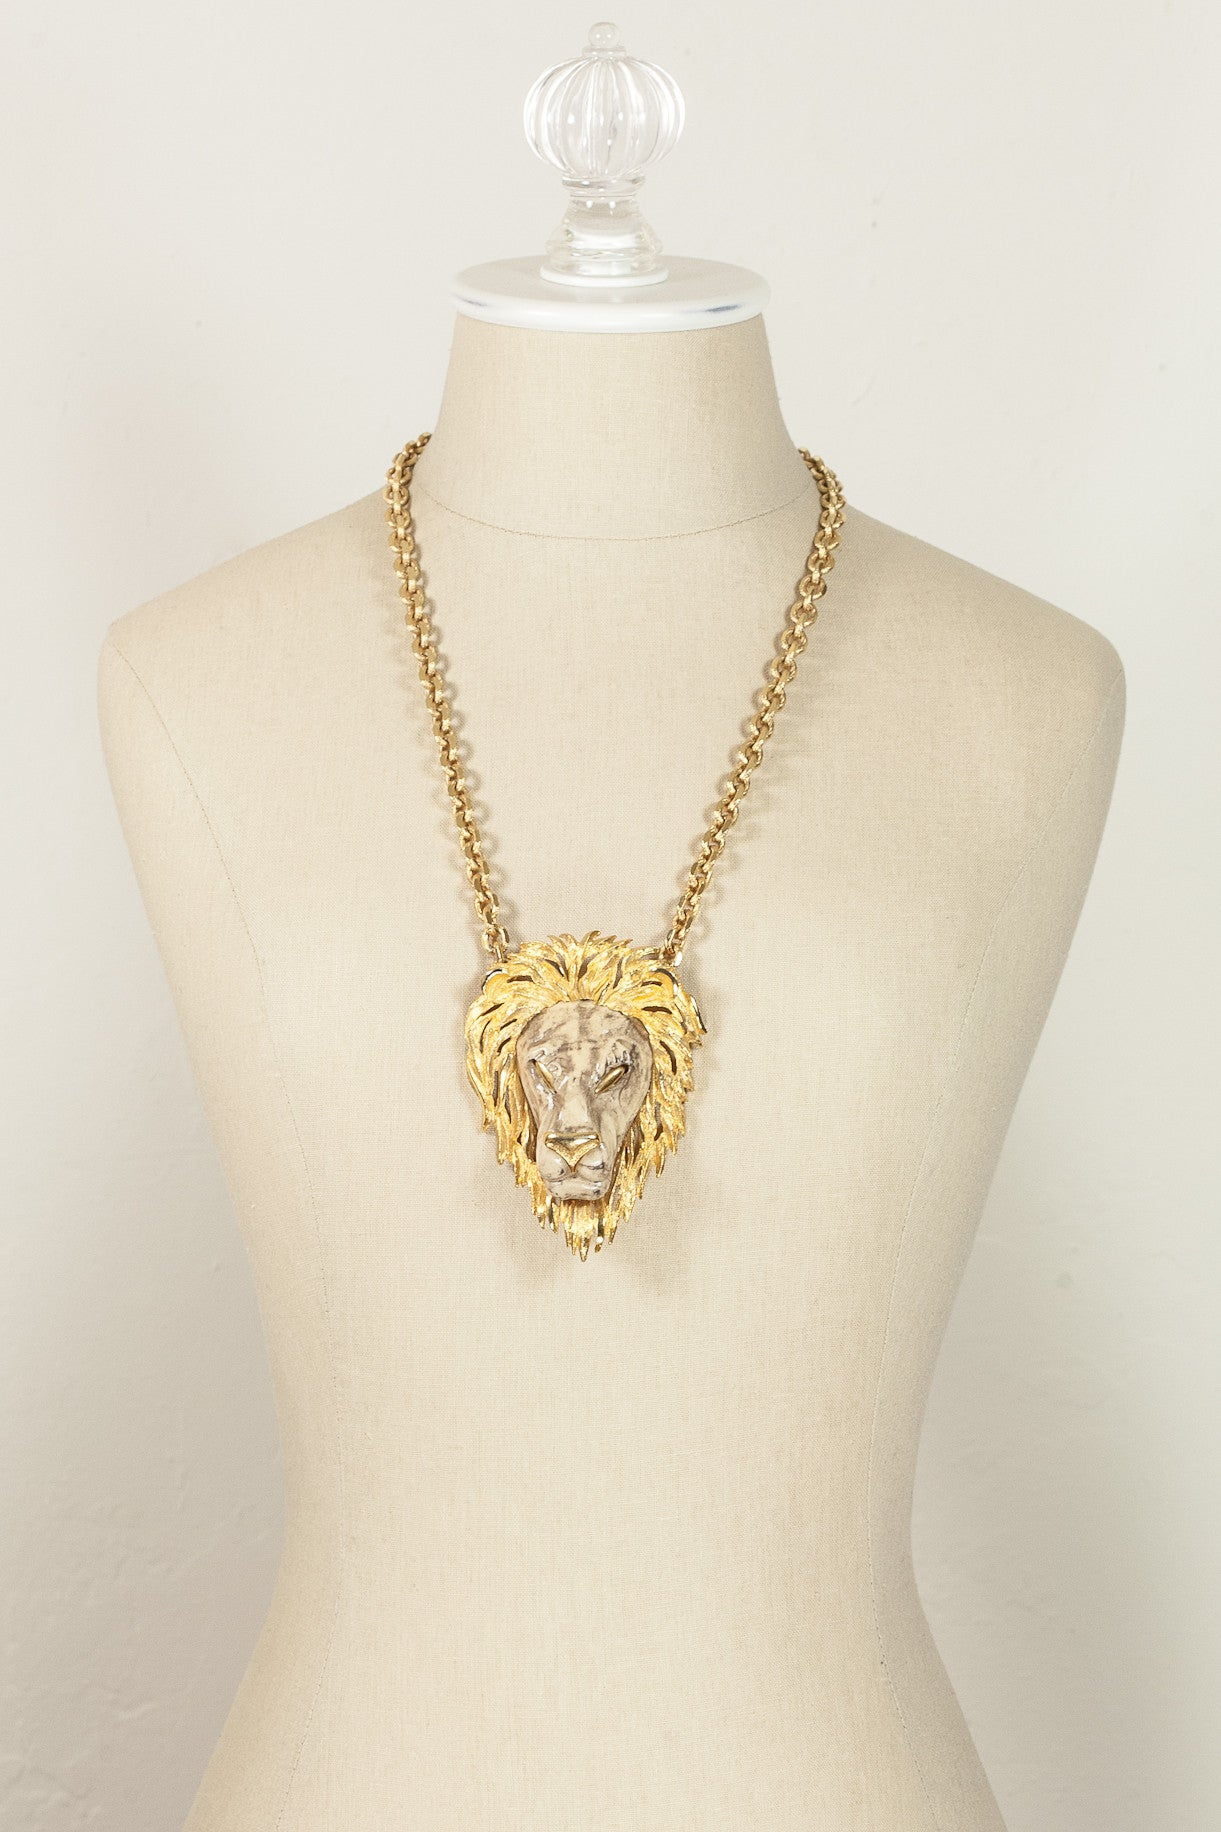 60's__Razza__Bold Lion Pendant Necklace